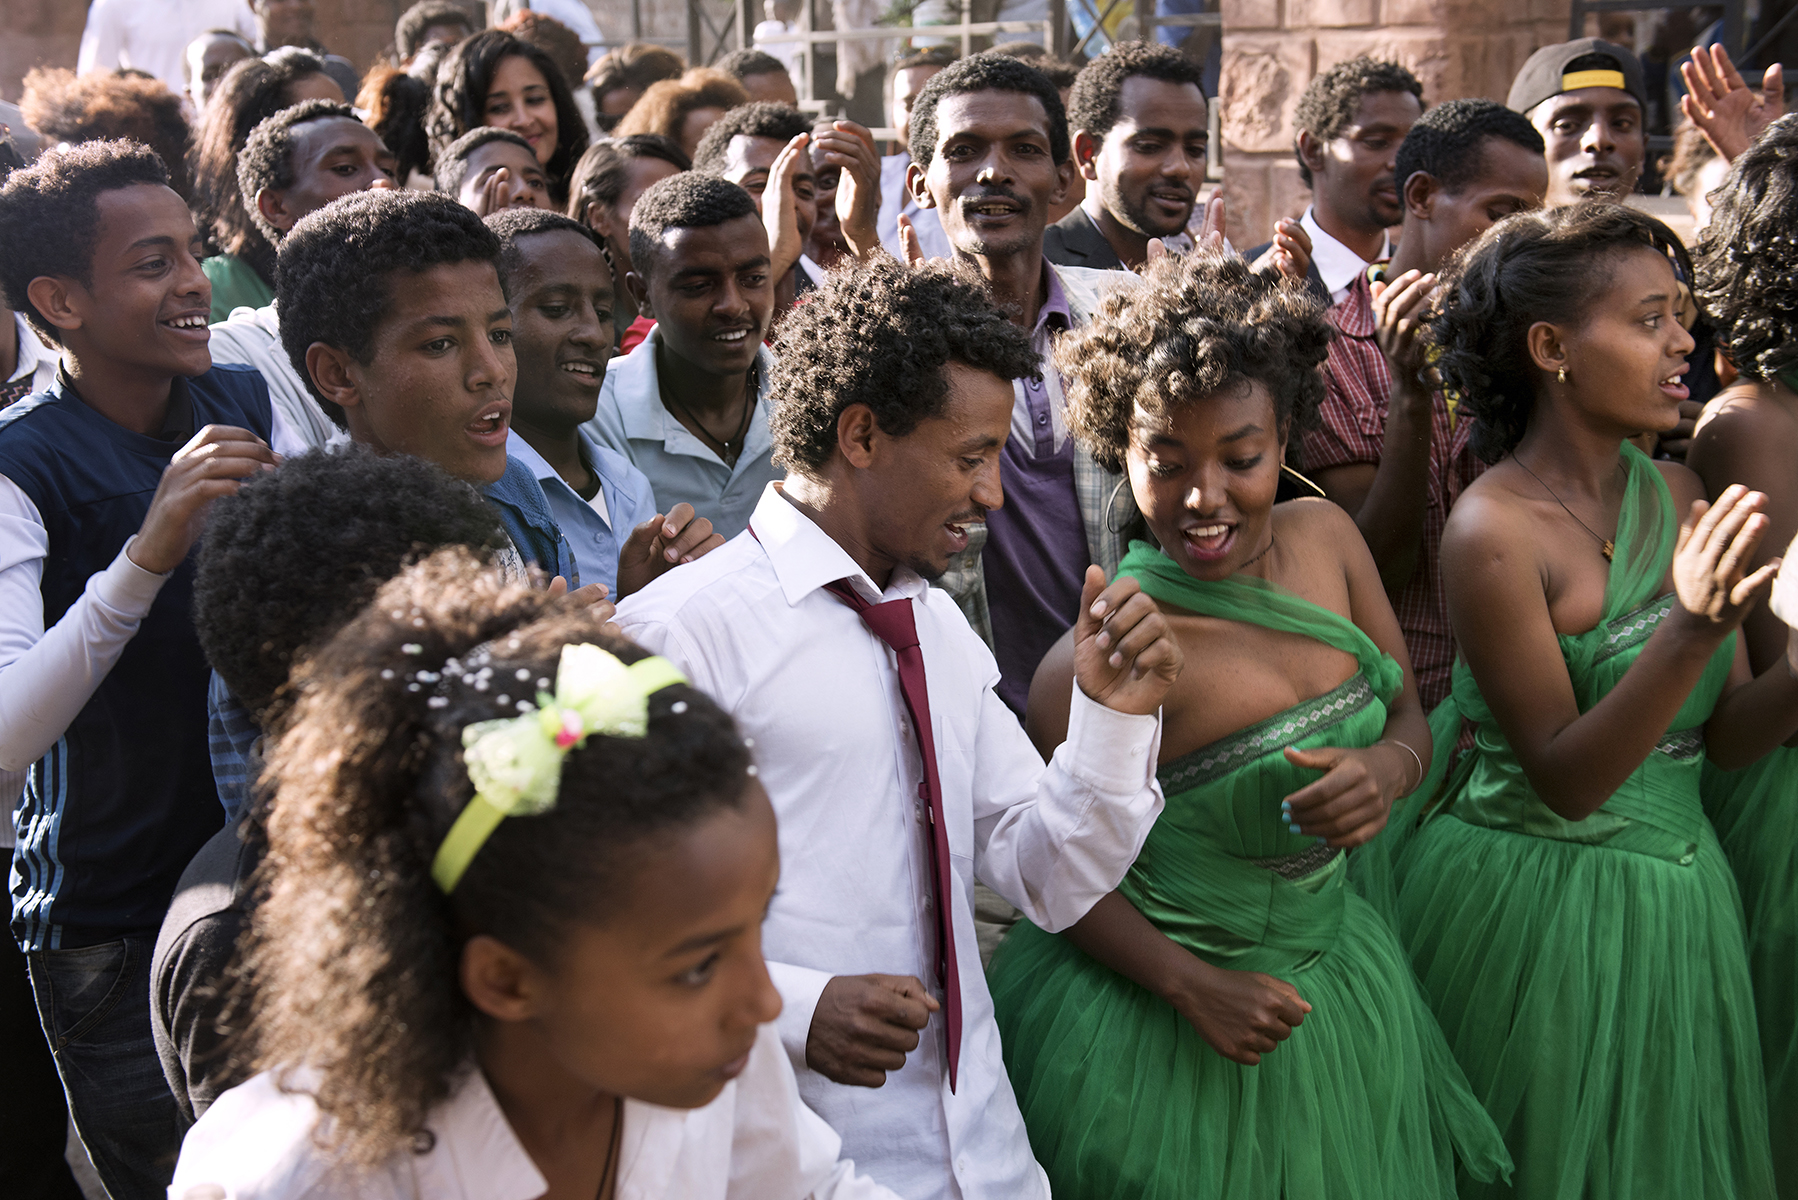 Newlyweds and their guests celebrate after their wedding at a hotel in Lalibela, Ethiopia.